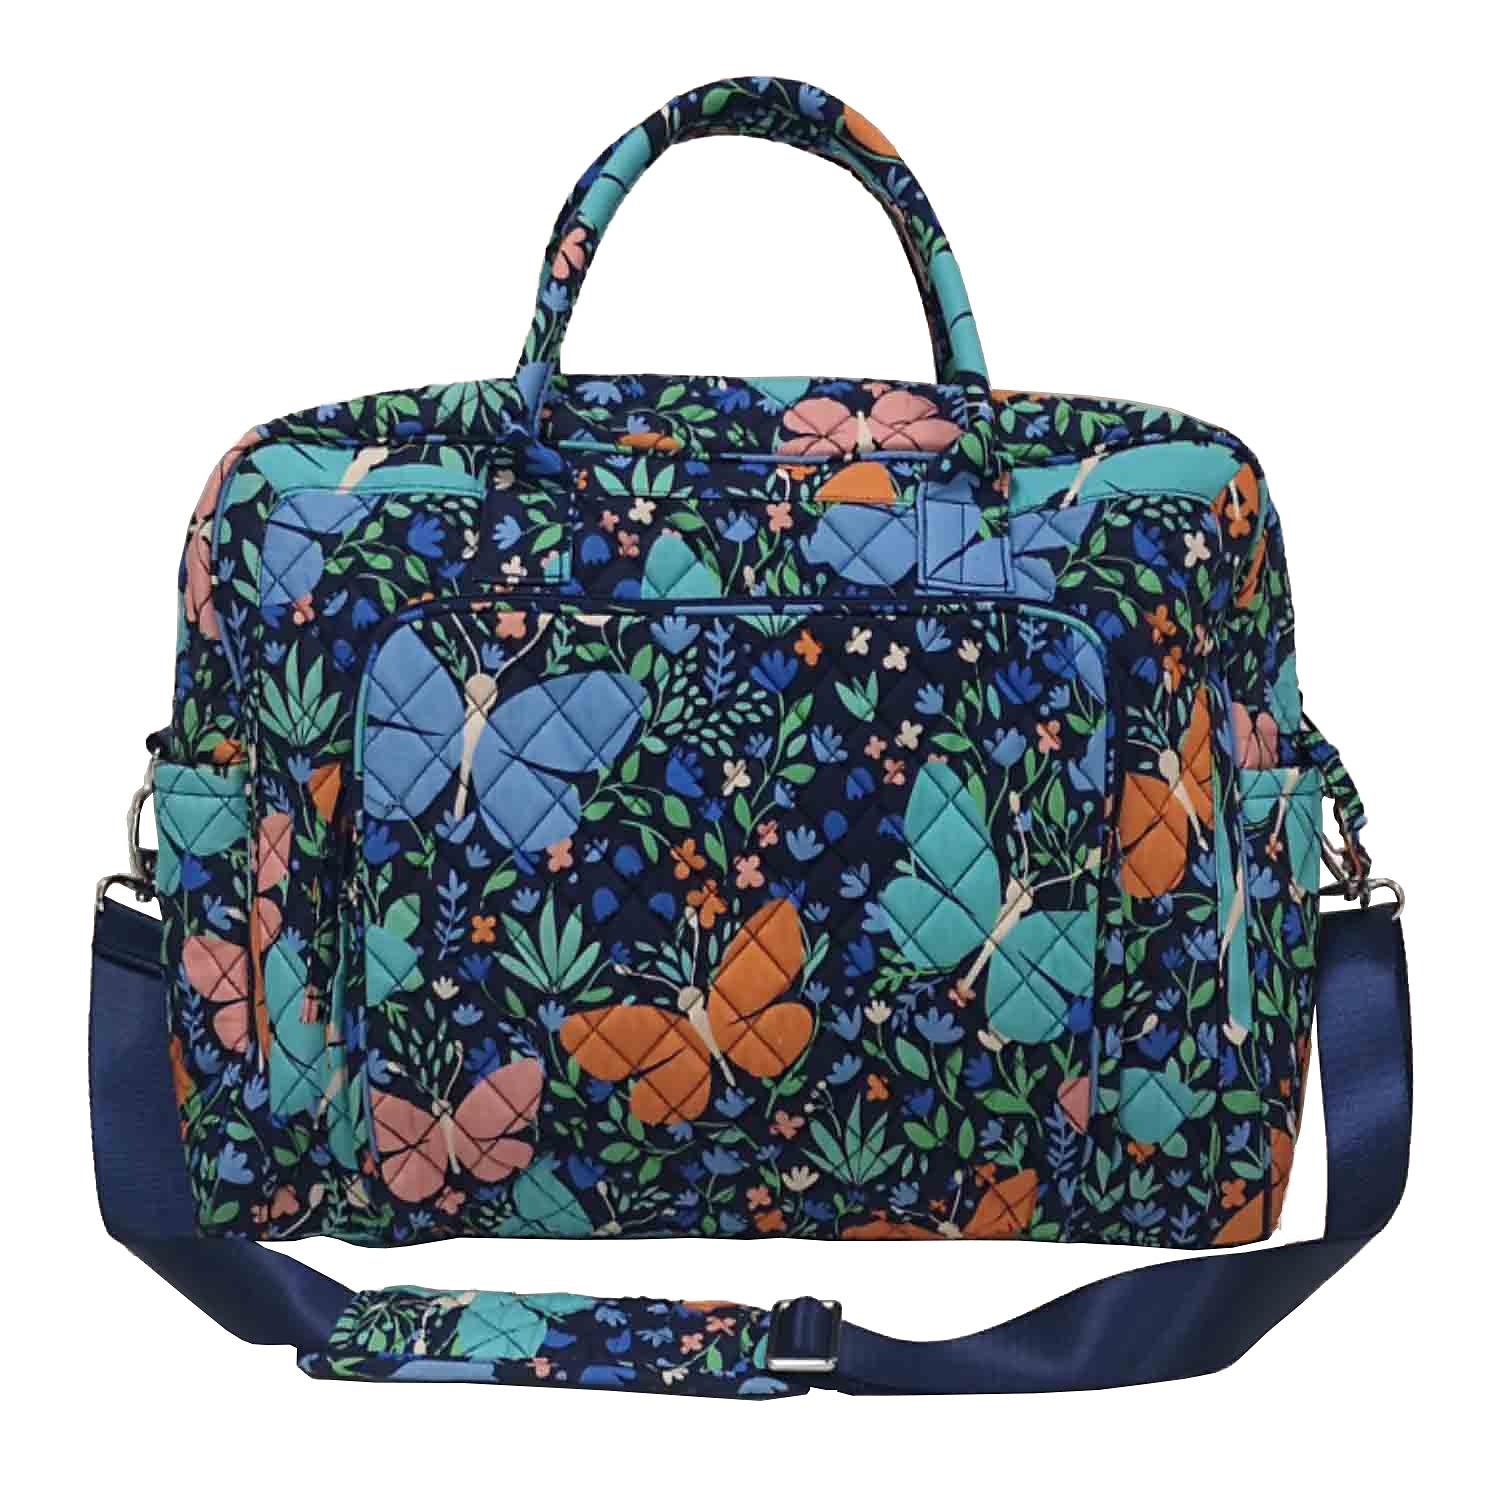 Member's Mark Quilted Travel Tote in Butterfly